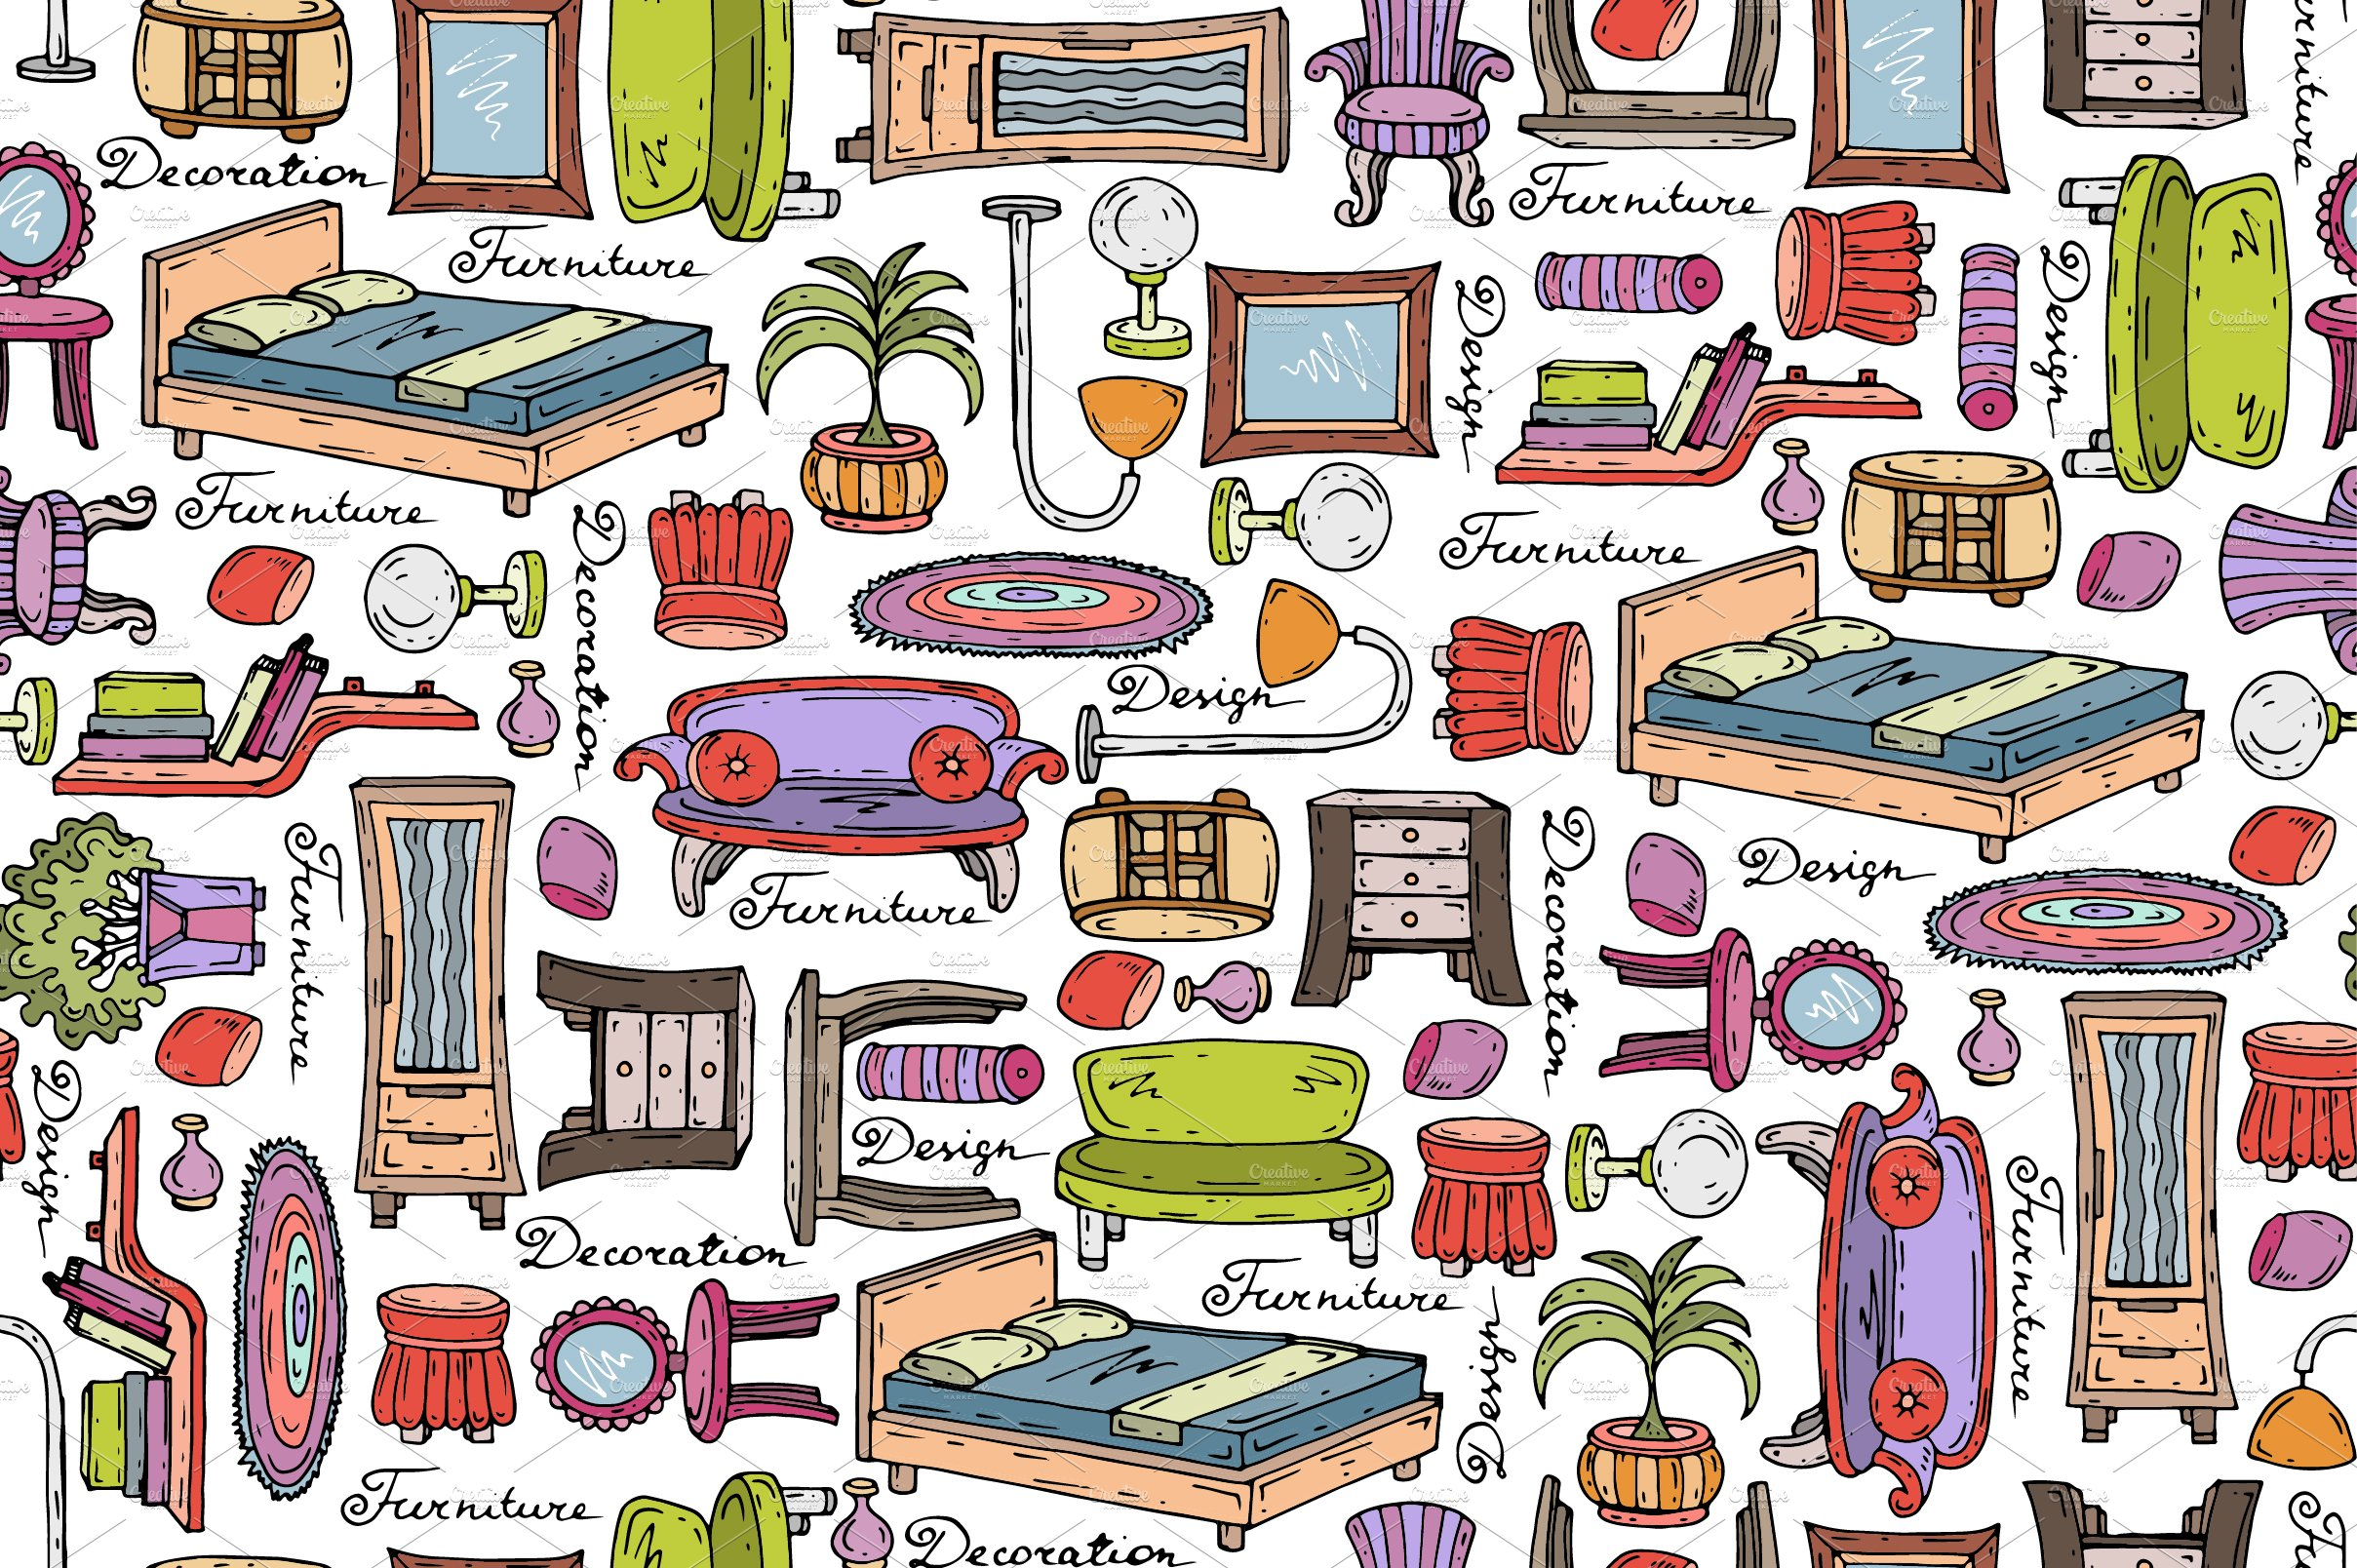 Furniture Sketches Pattern With Furniture Sketches Patterns Creative Market